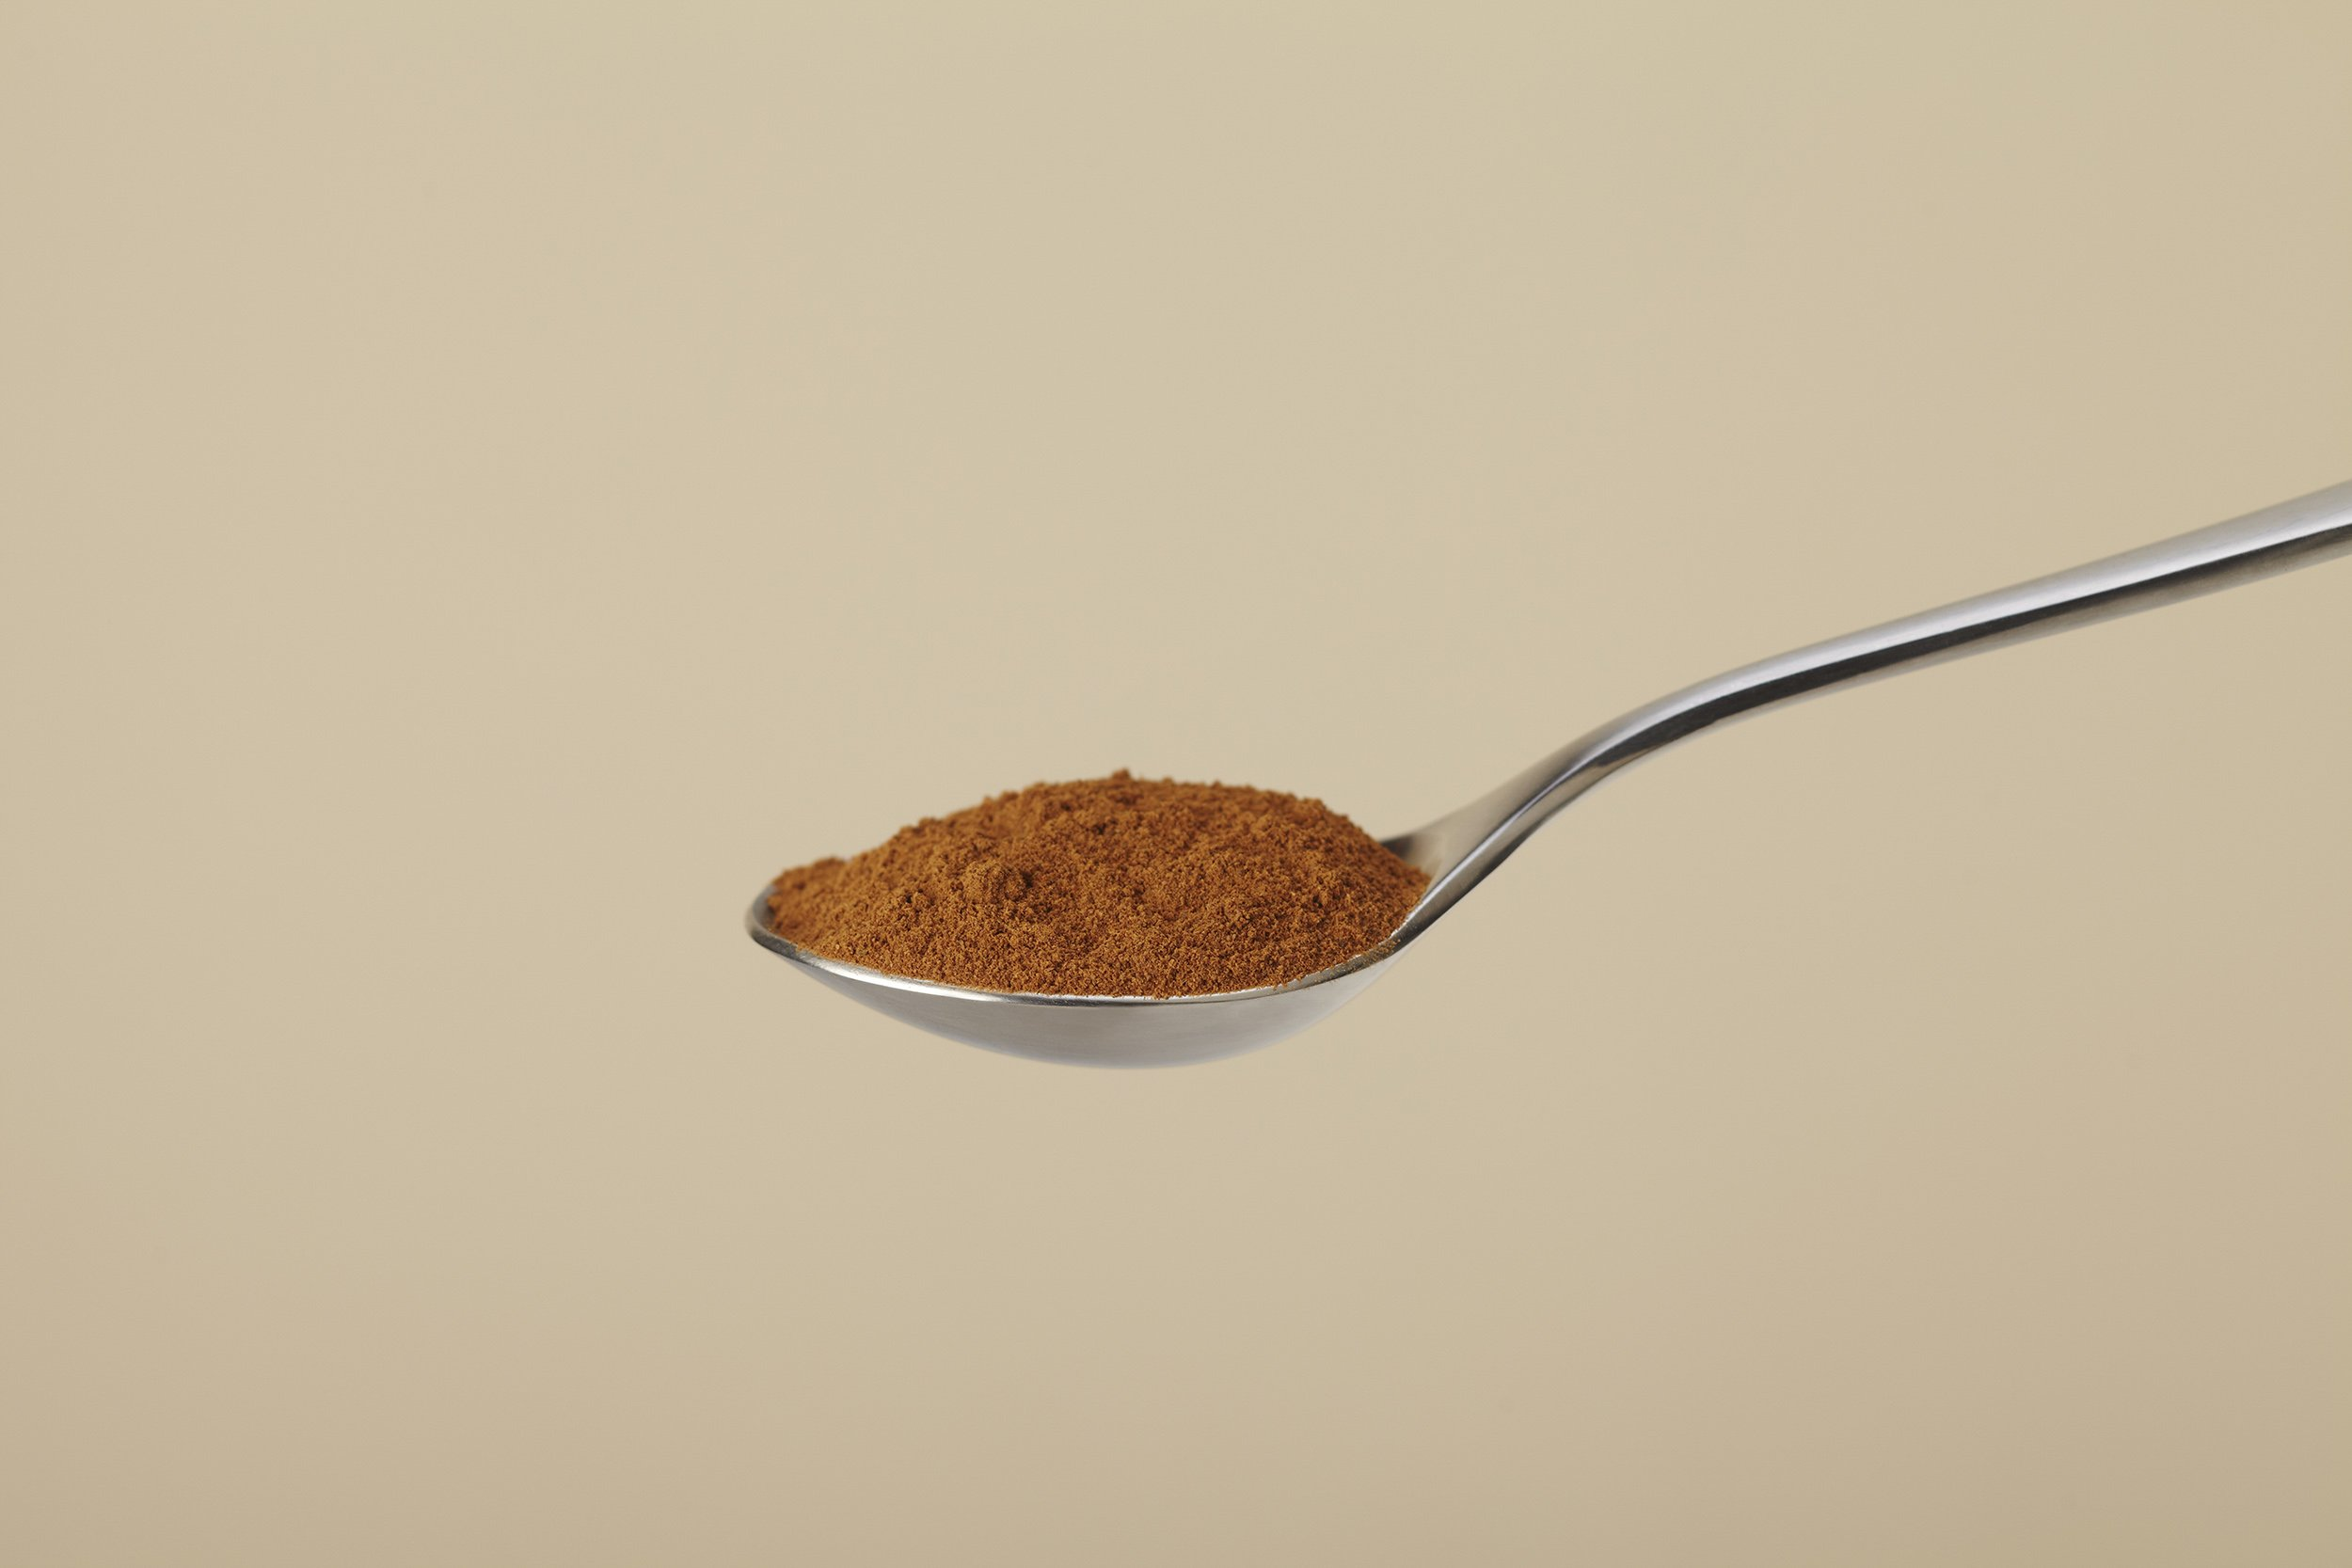 The Cinnamon Challenge and Other Risky Behaviors Gone Viral